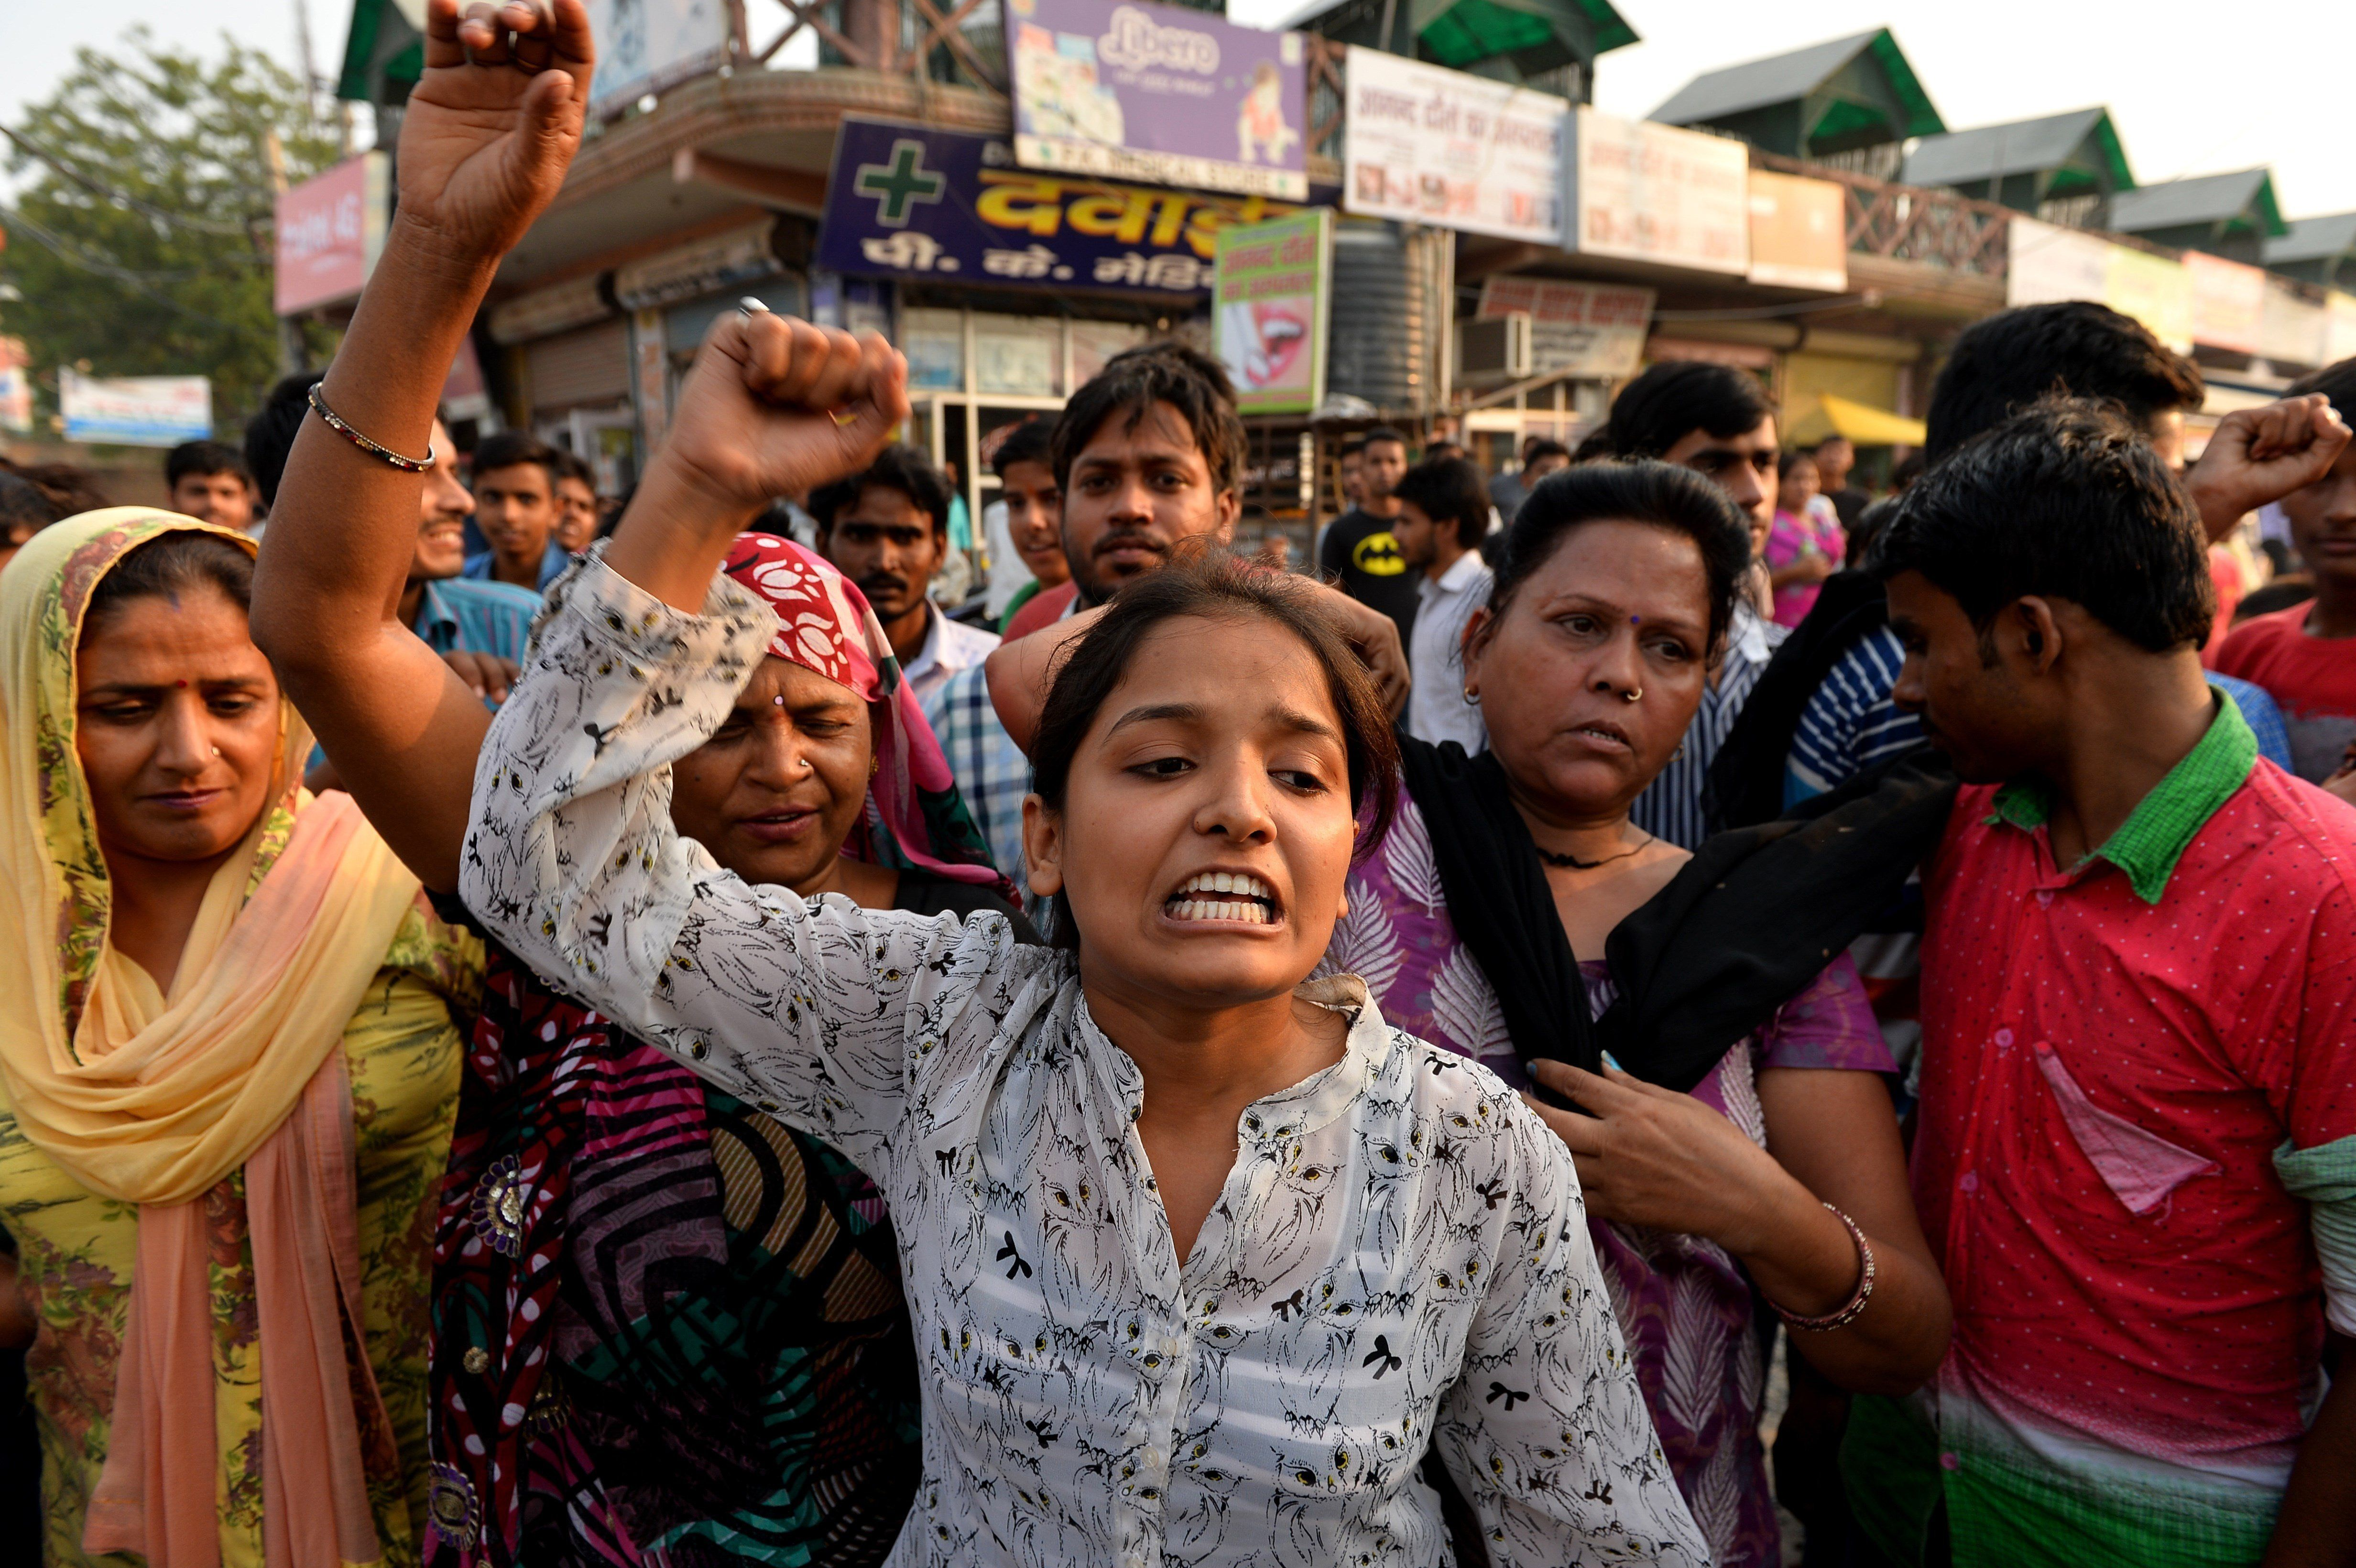 Indian protesters shout slogans near the home of a minor girl who was raped in New Delhi on Oct. 17, 2015.